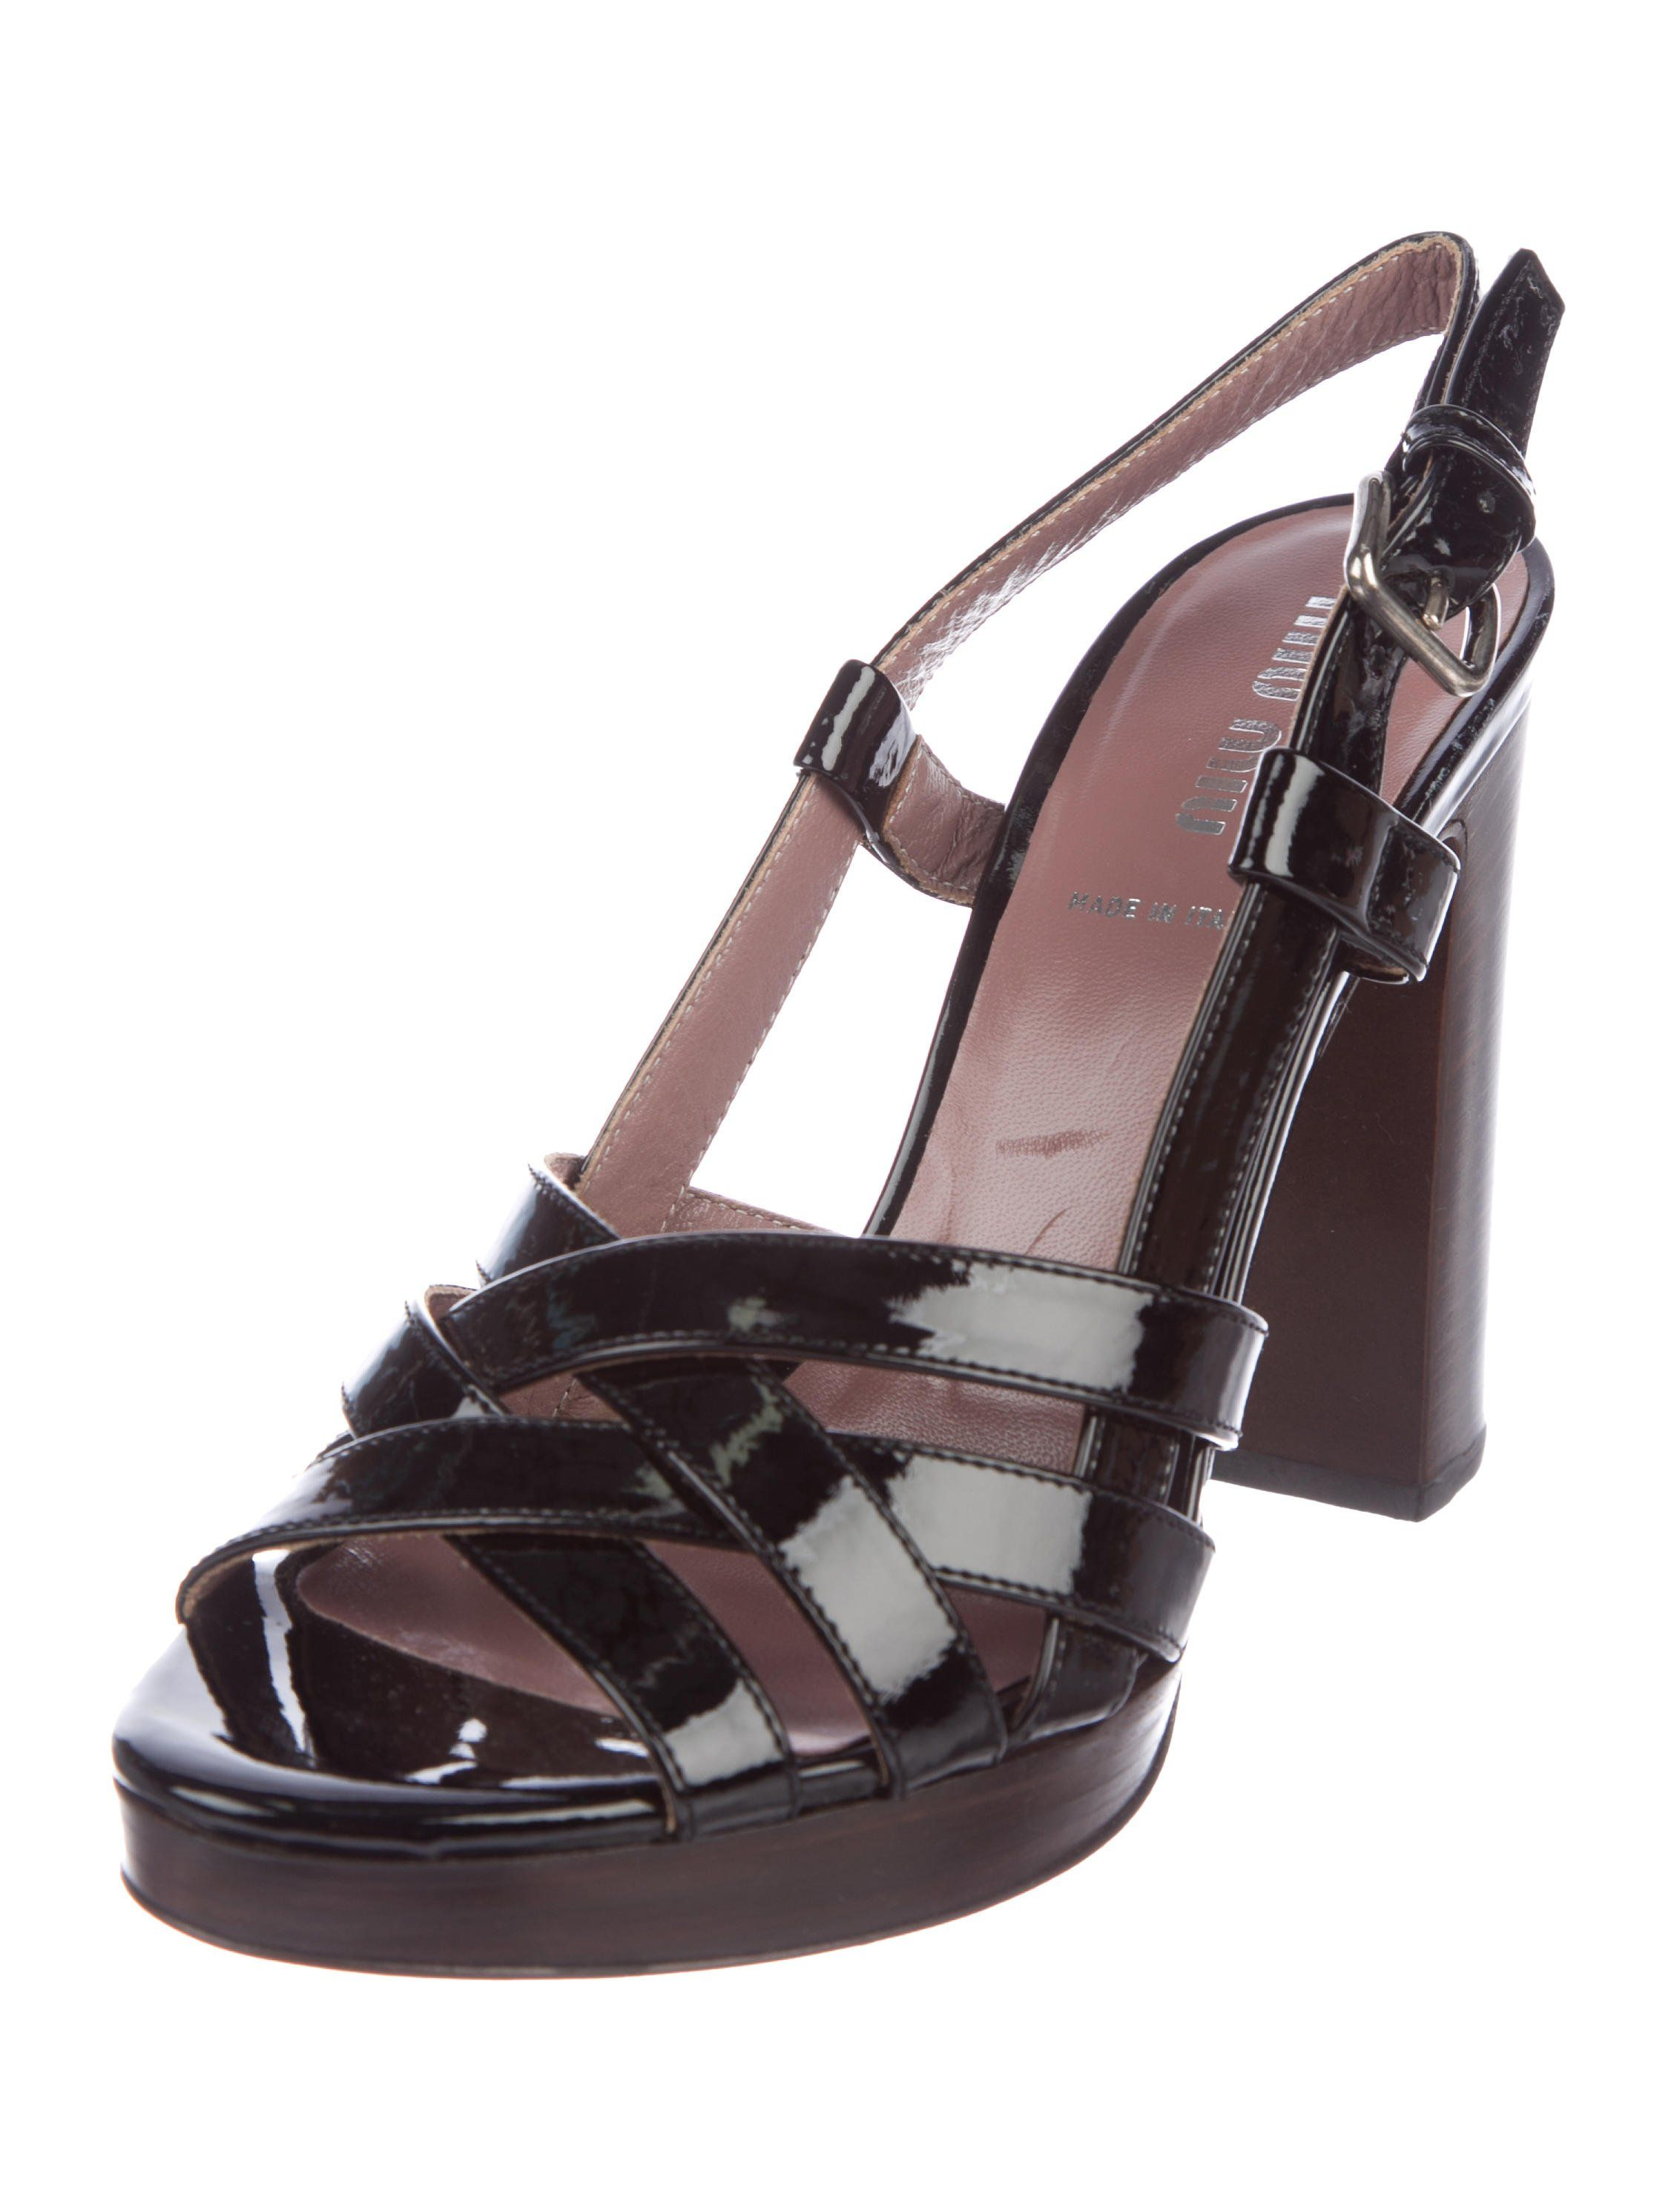 Black Patent Leather Miu Miu Platform Sandals With Tonal Stitching Stacked Heels And Buckle Closures At Side Platform Sandals Leather Platform Sandals Leather